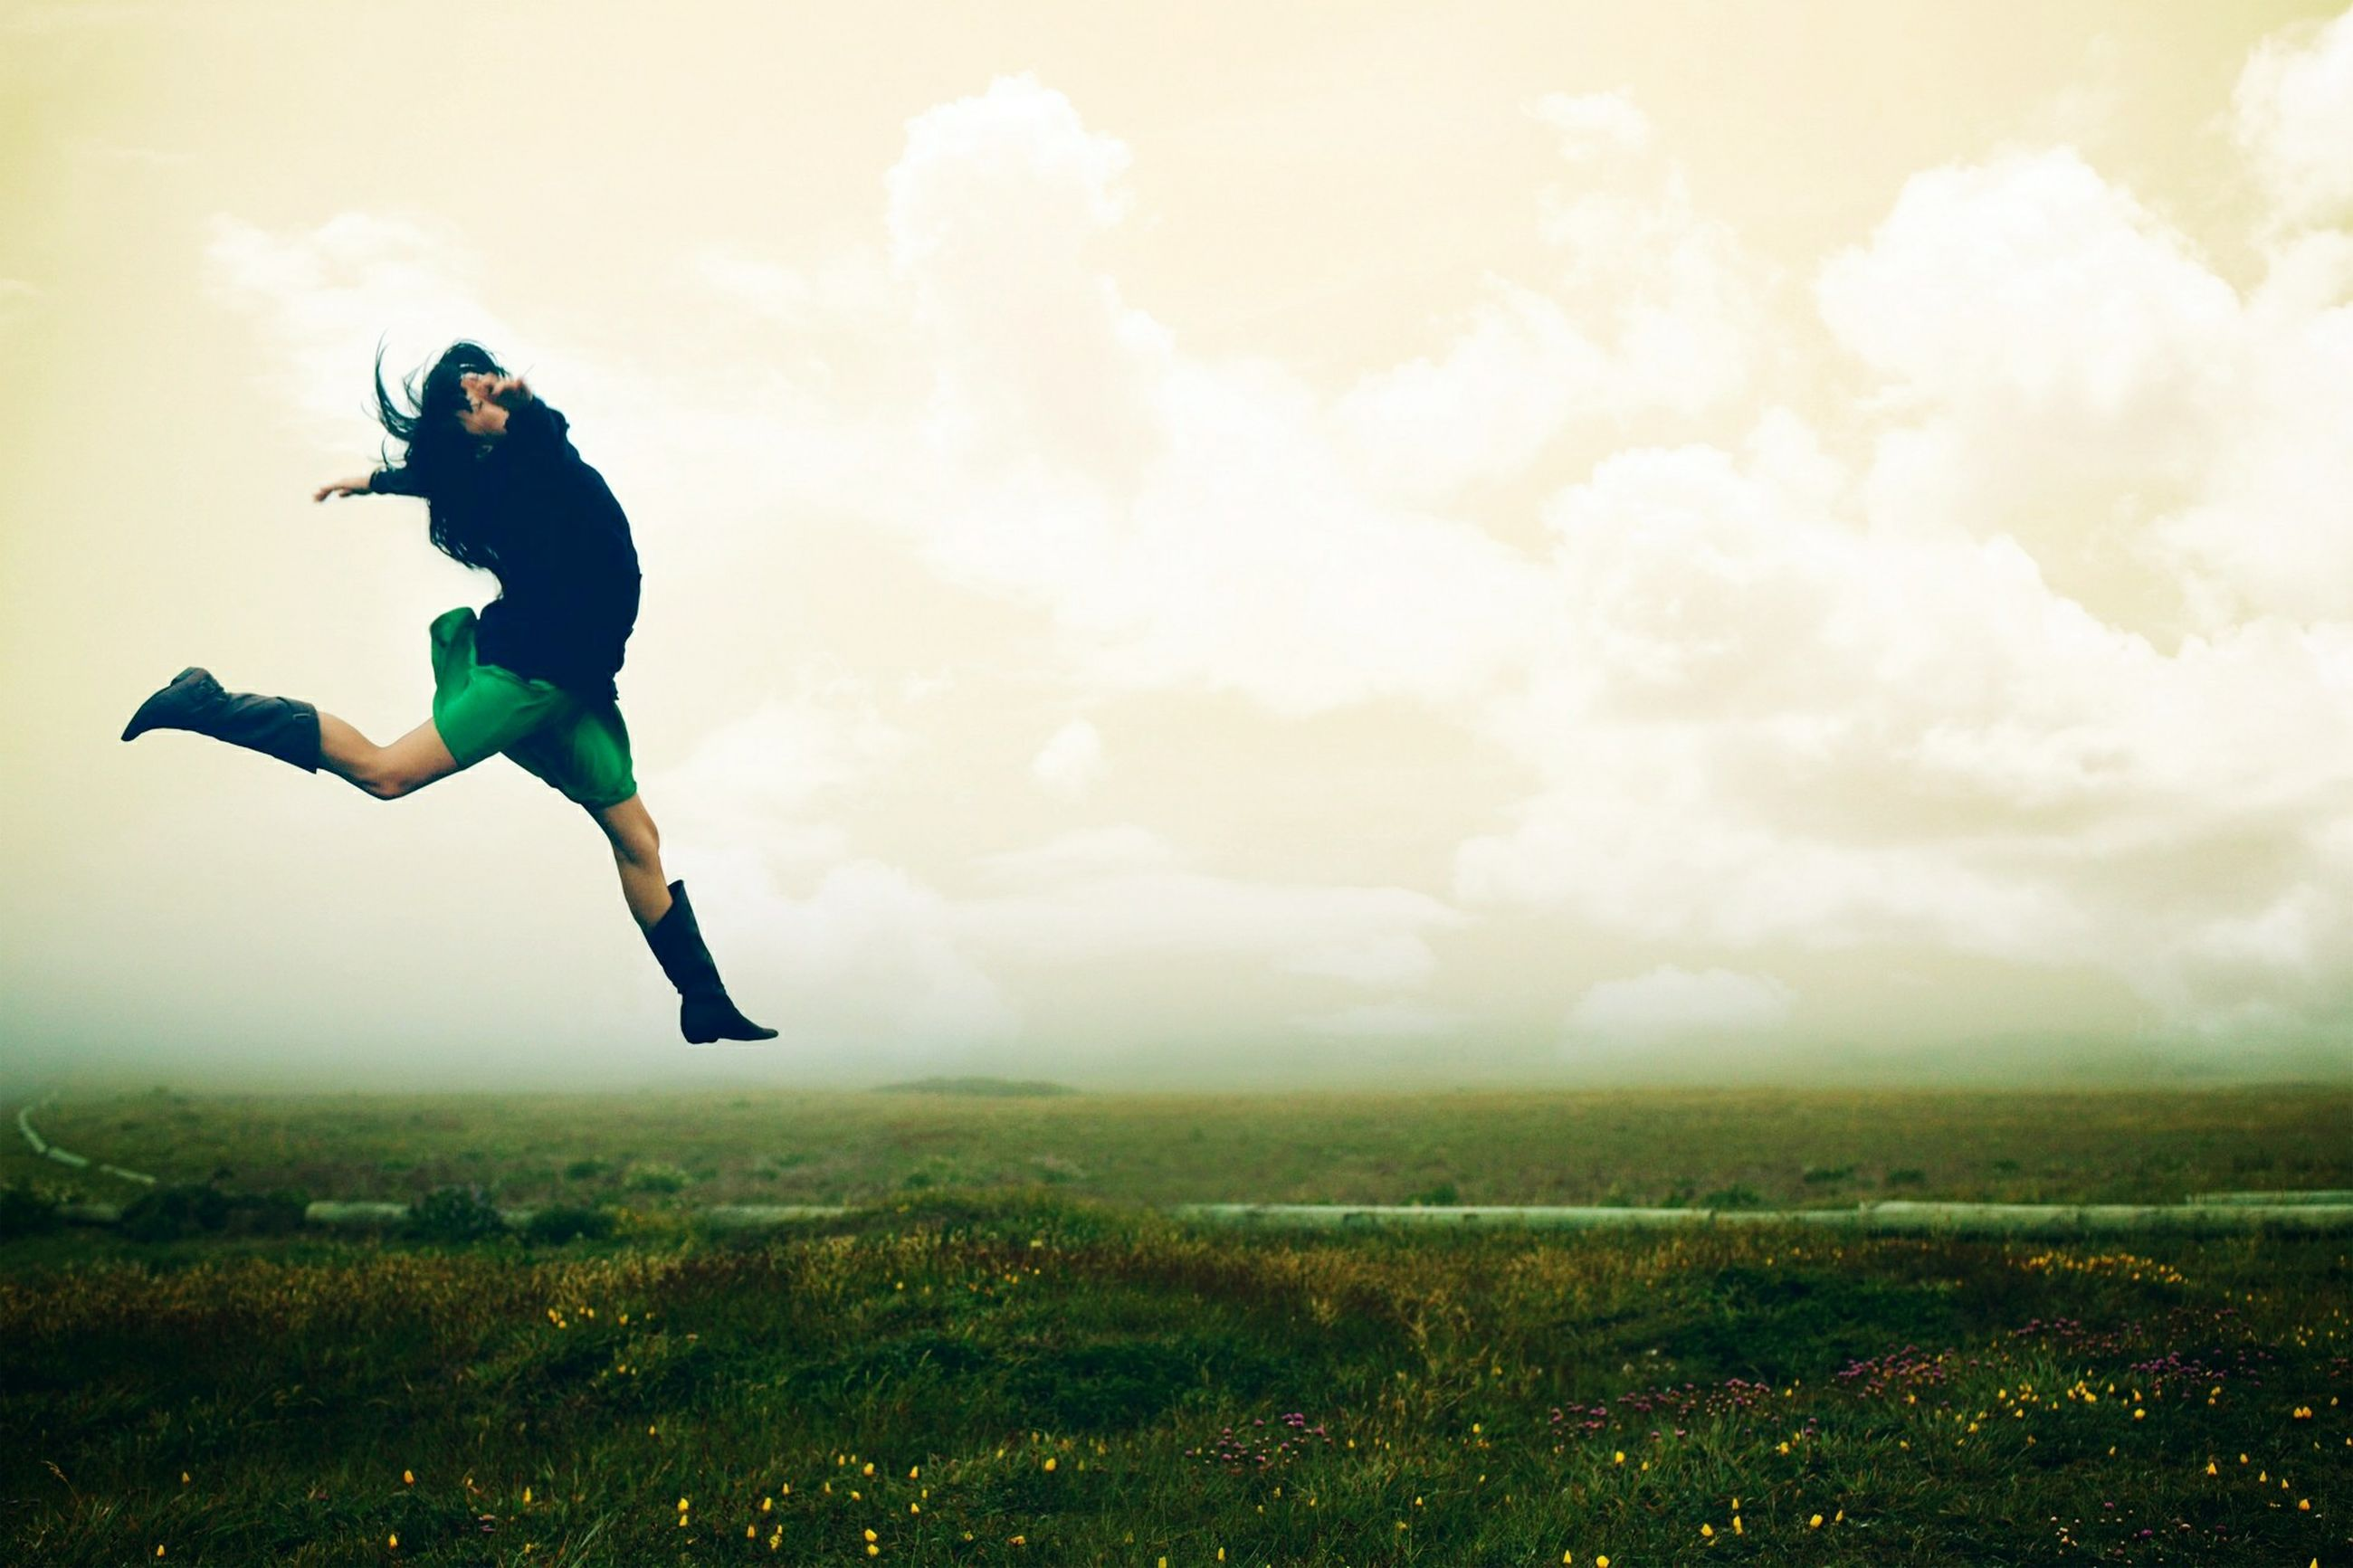 full length, sky, mid-air, field, grass, leisure activity, lifestyles, cloud - sky, cloudy, jumping, grassy, landscape, nature, childhood, running, green color, day, freedom